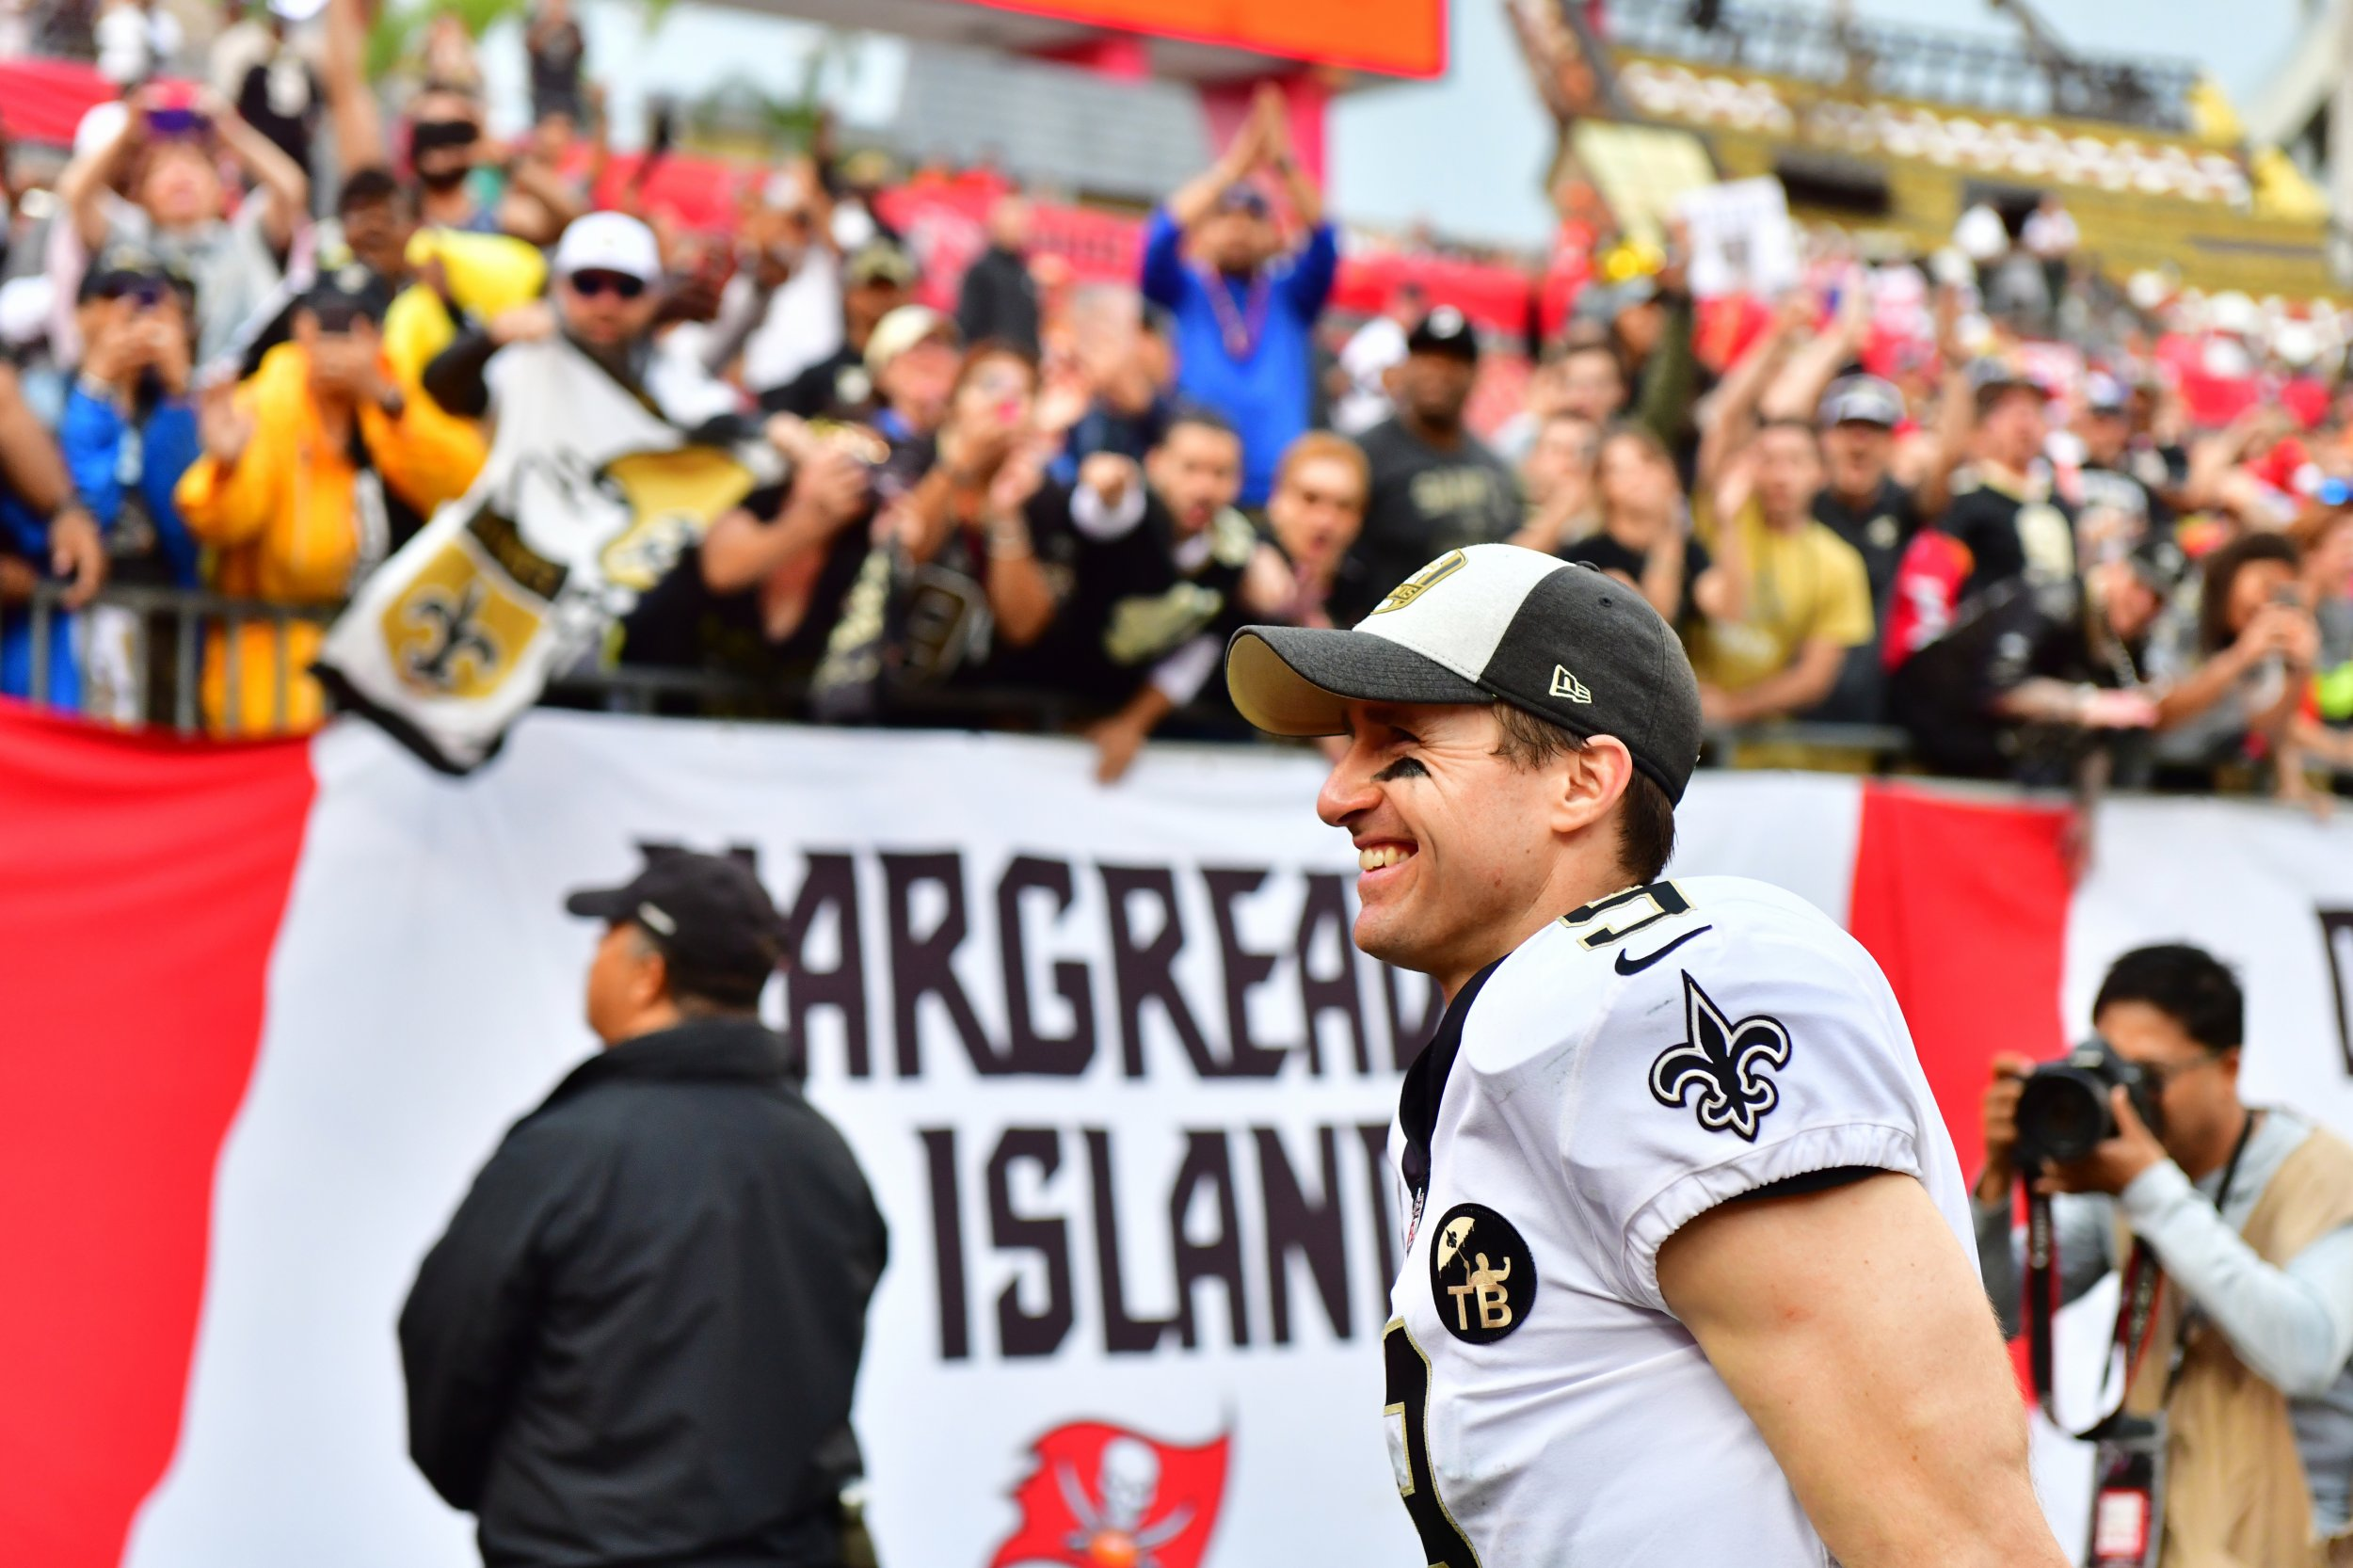 Drew Brees,New Orleans Saints